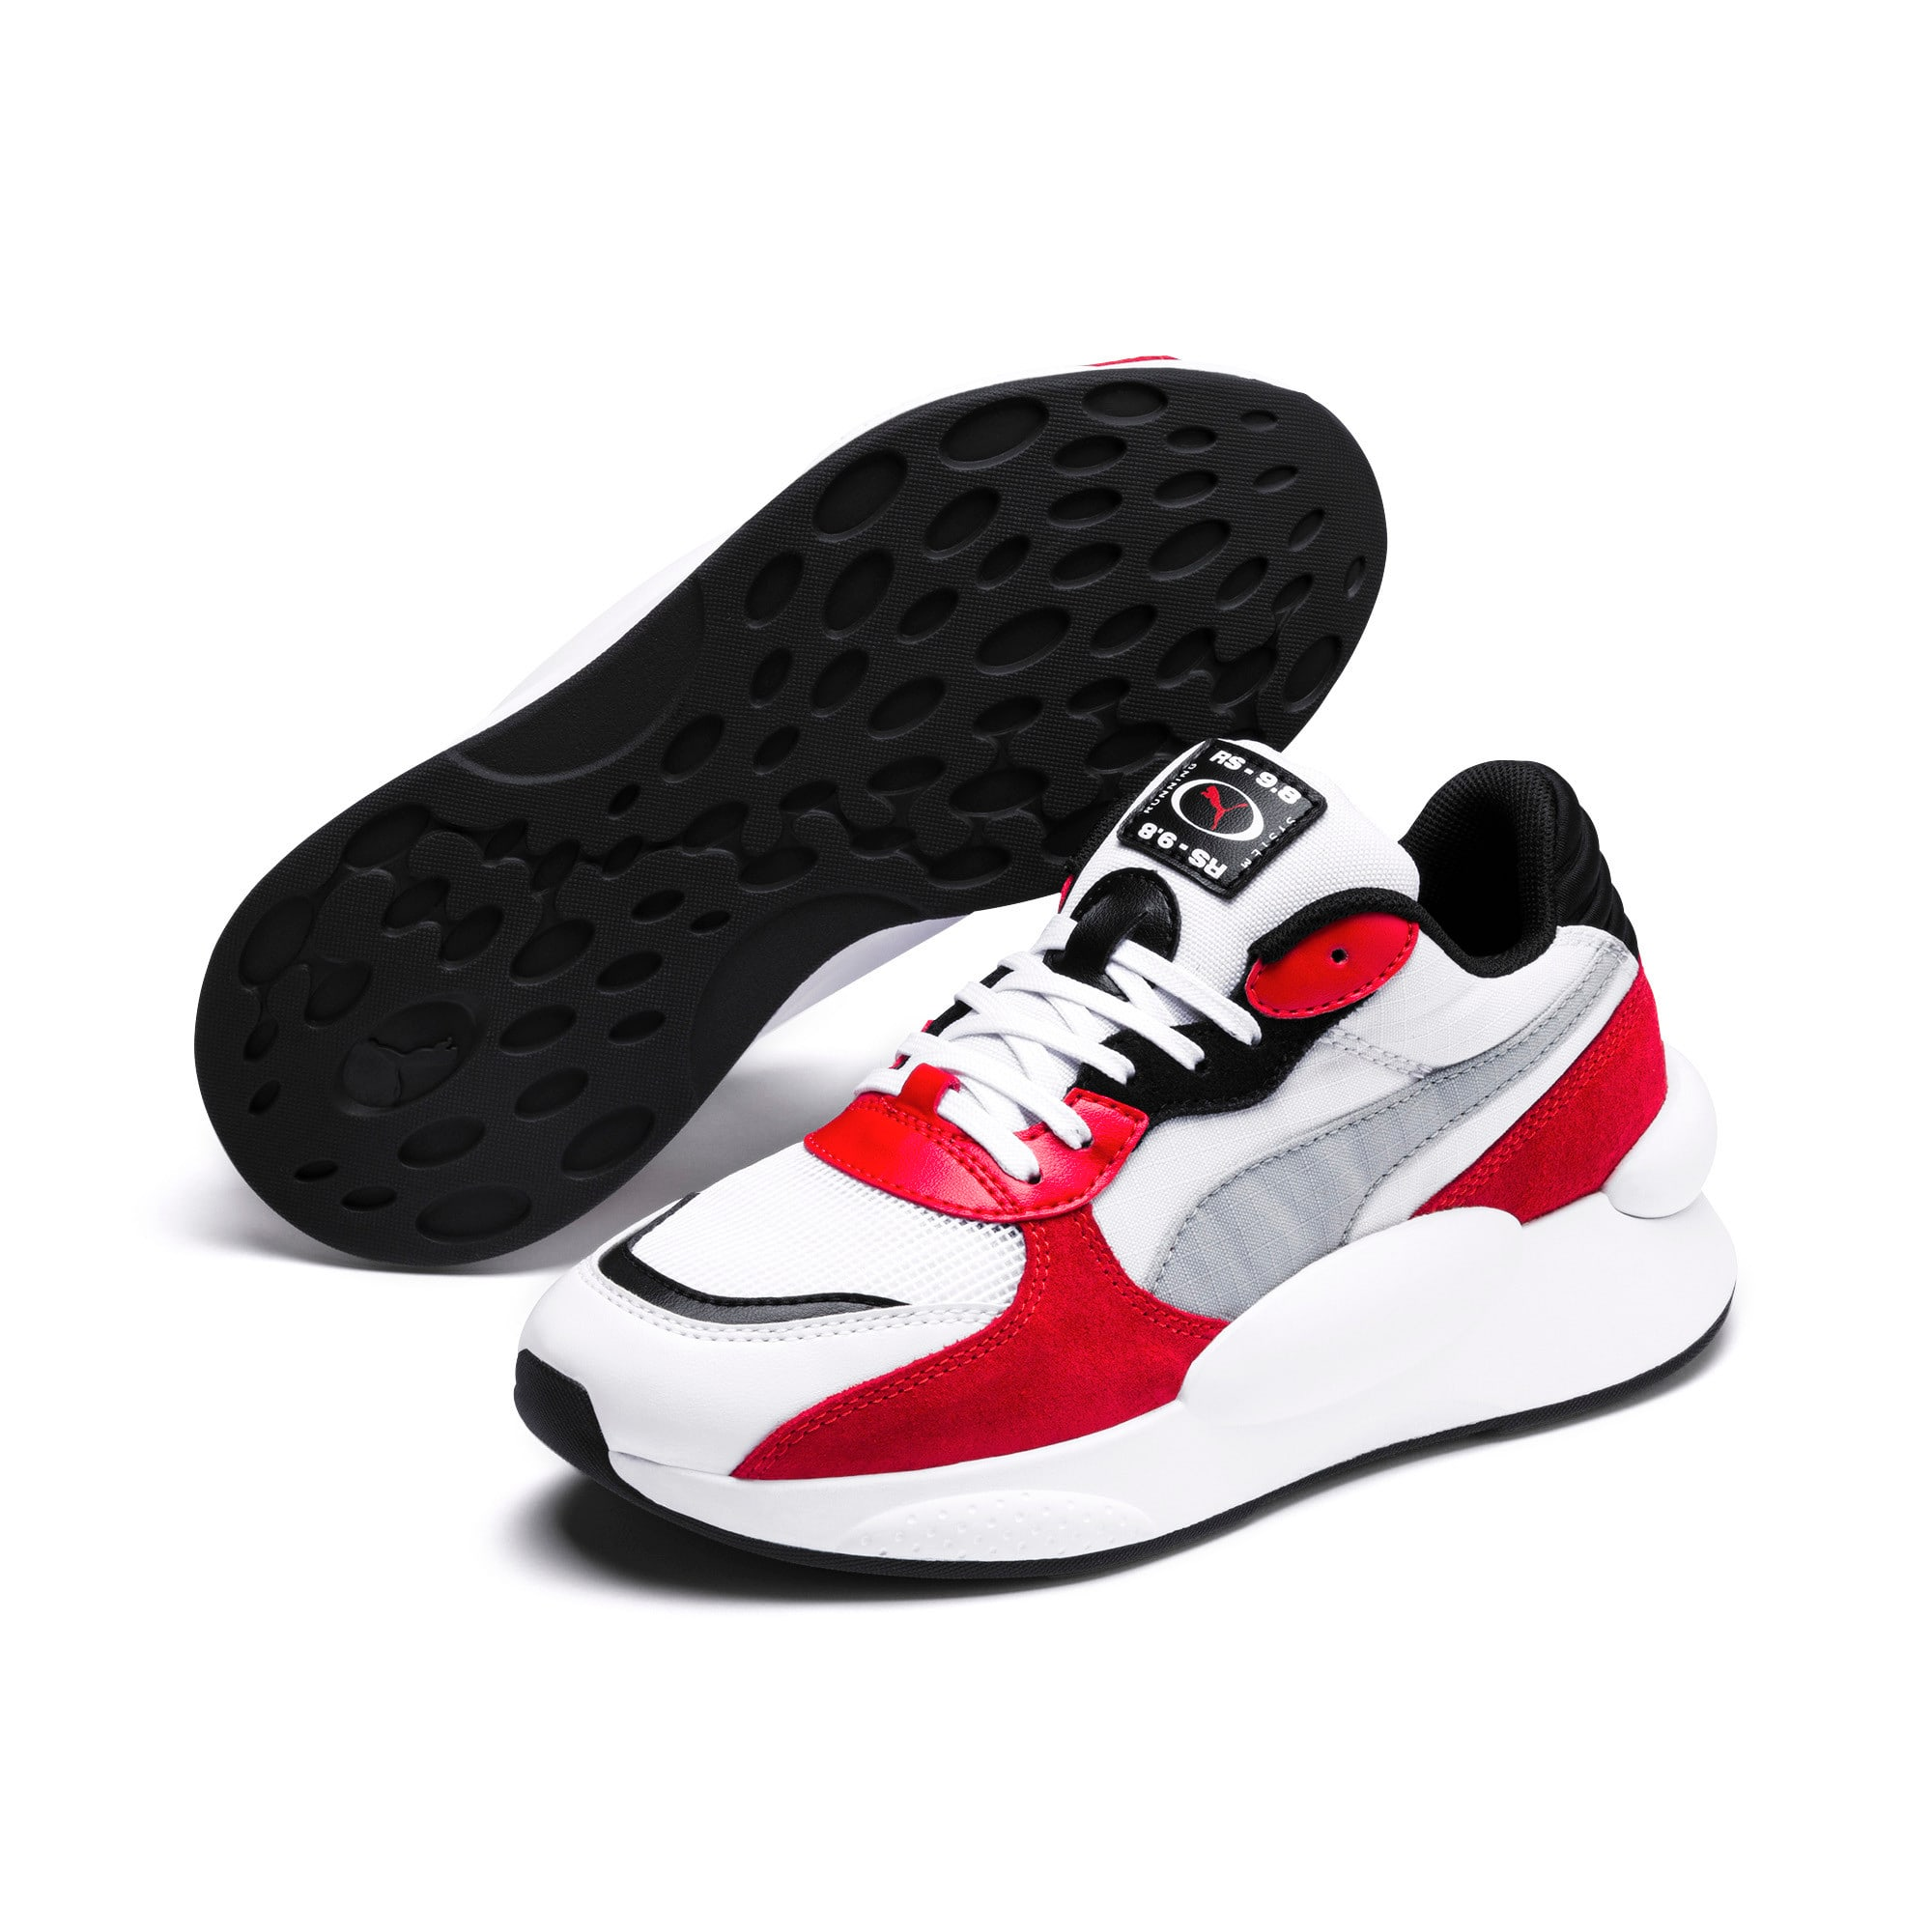 Thumbnail 2 of RS 9.8 Space Sneakers JR, Puma White-High Risk Red, medium